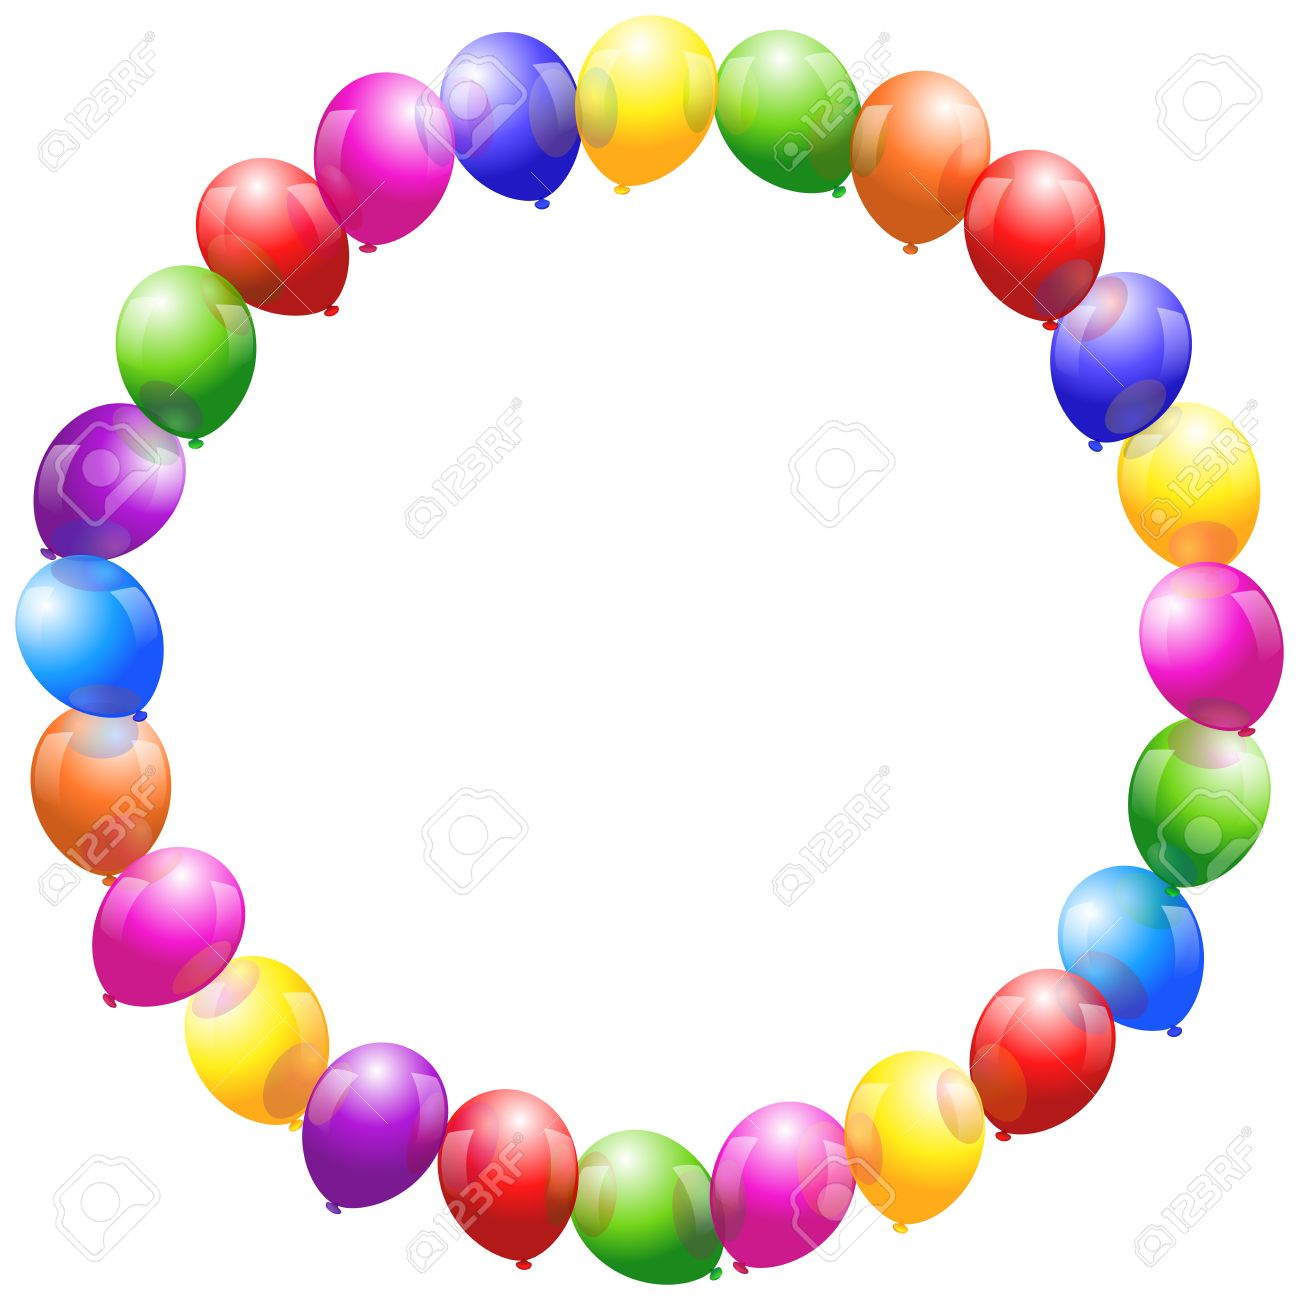 Colorful glossy balloons that form a circular frame - 25331719